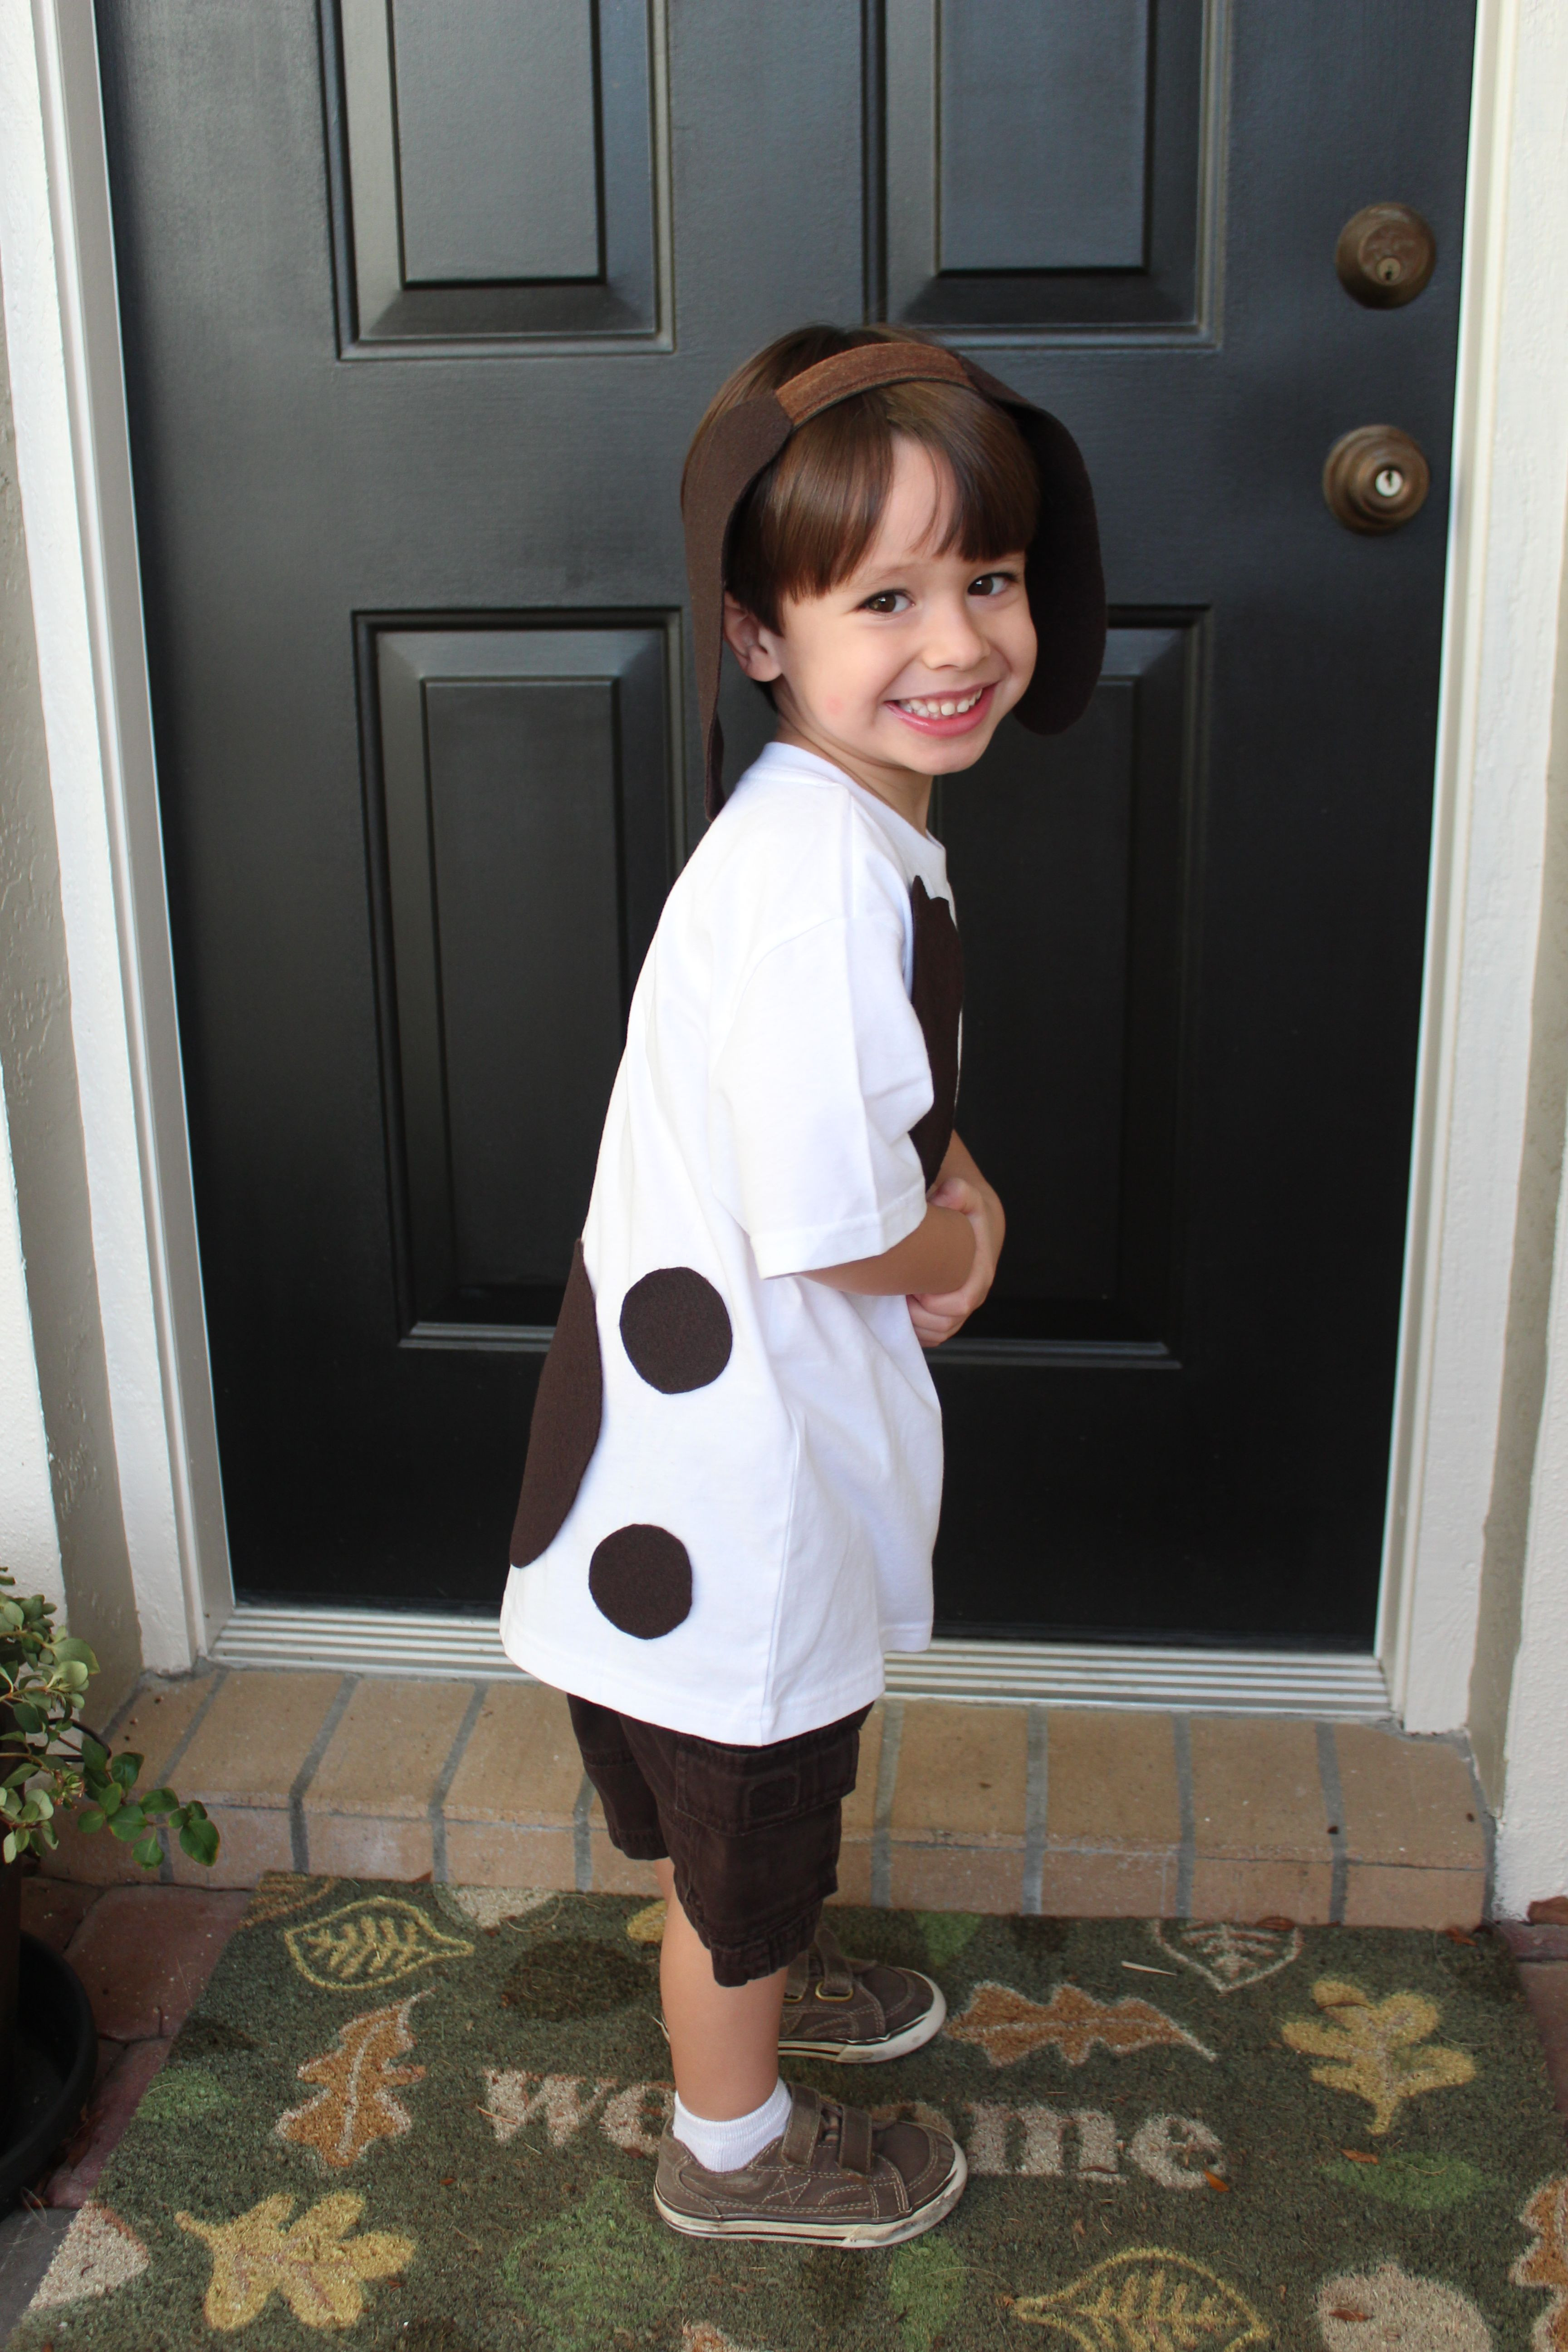 Best ideas about DIY Dog Costume For Kids . Save or Pin My homemade Pokey Little Puppy costume for my son s book Now.